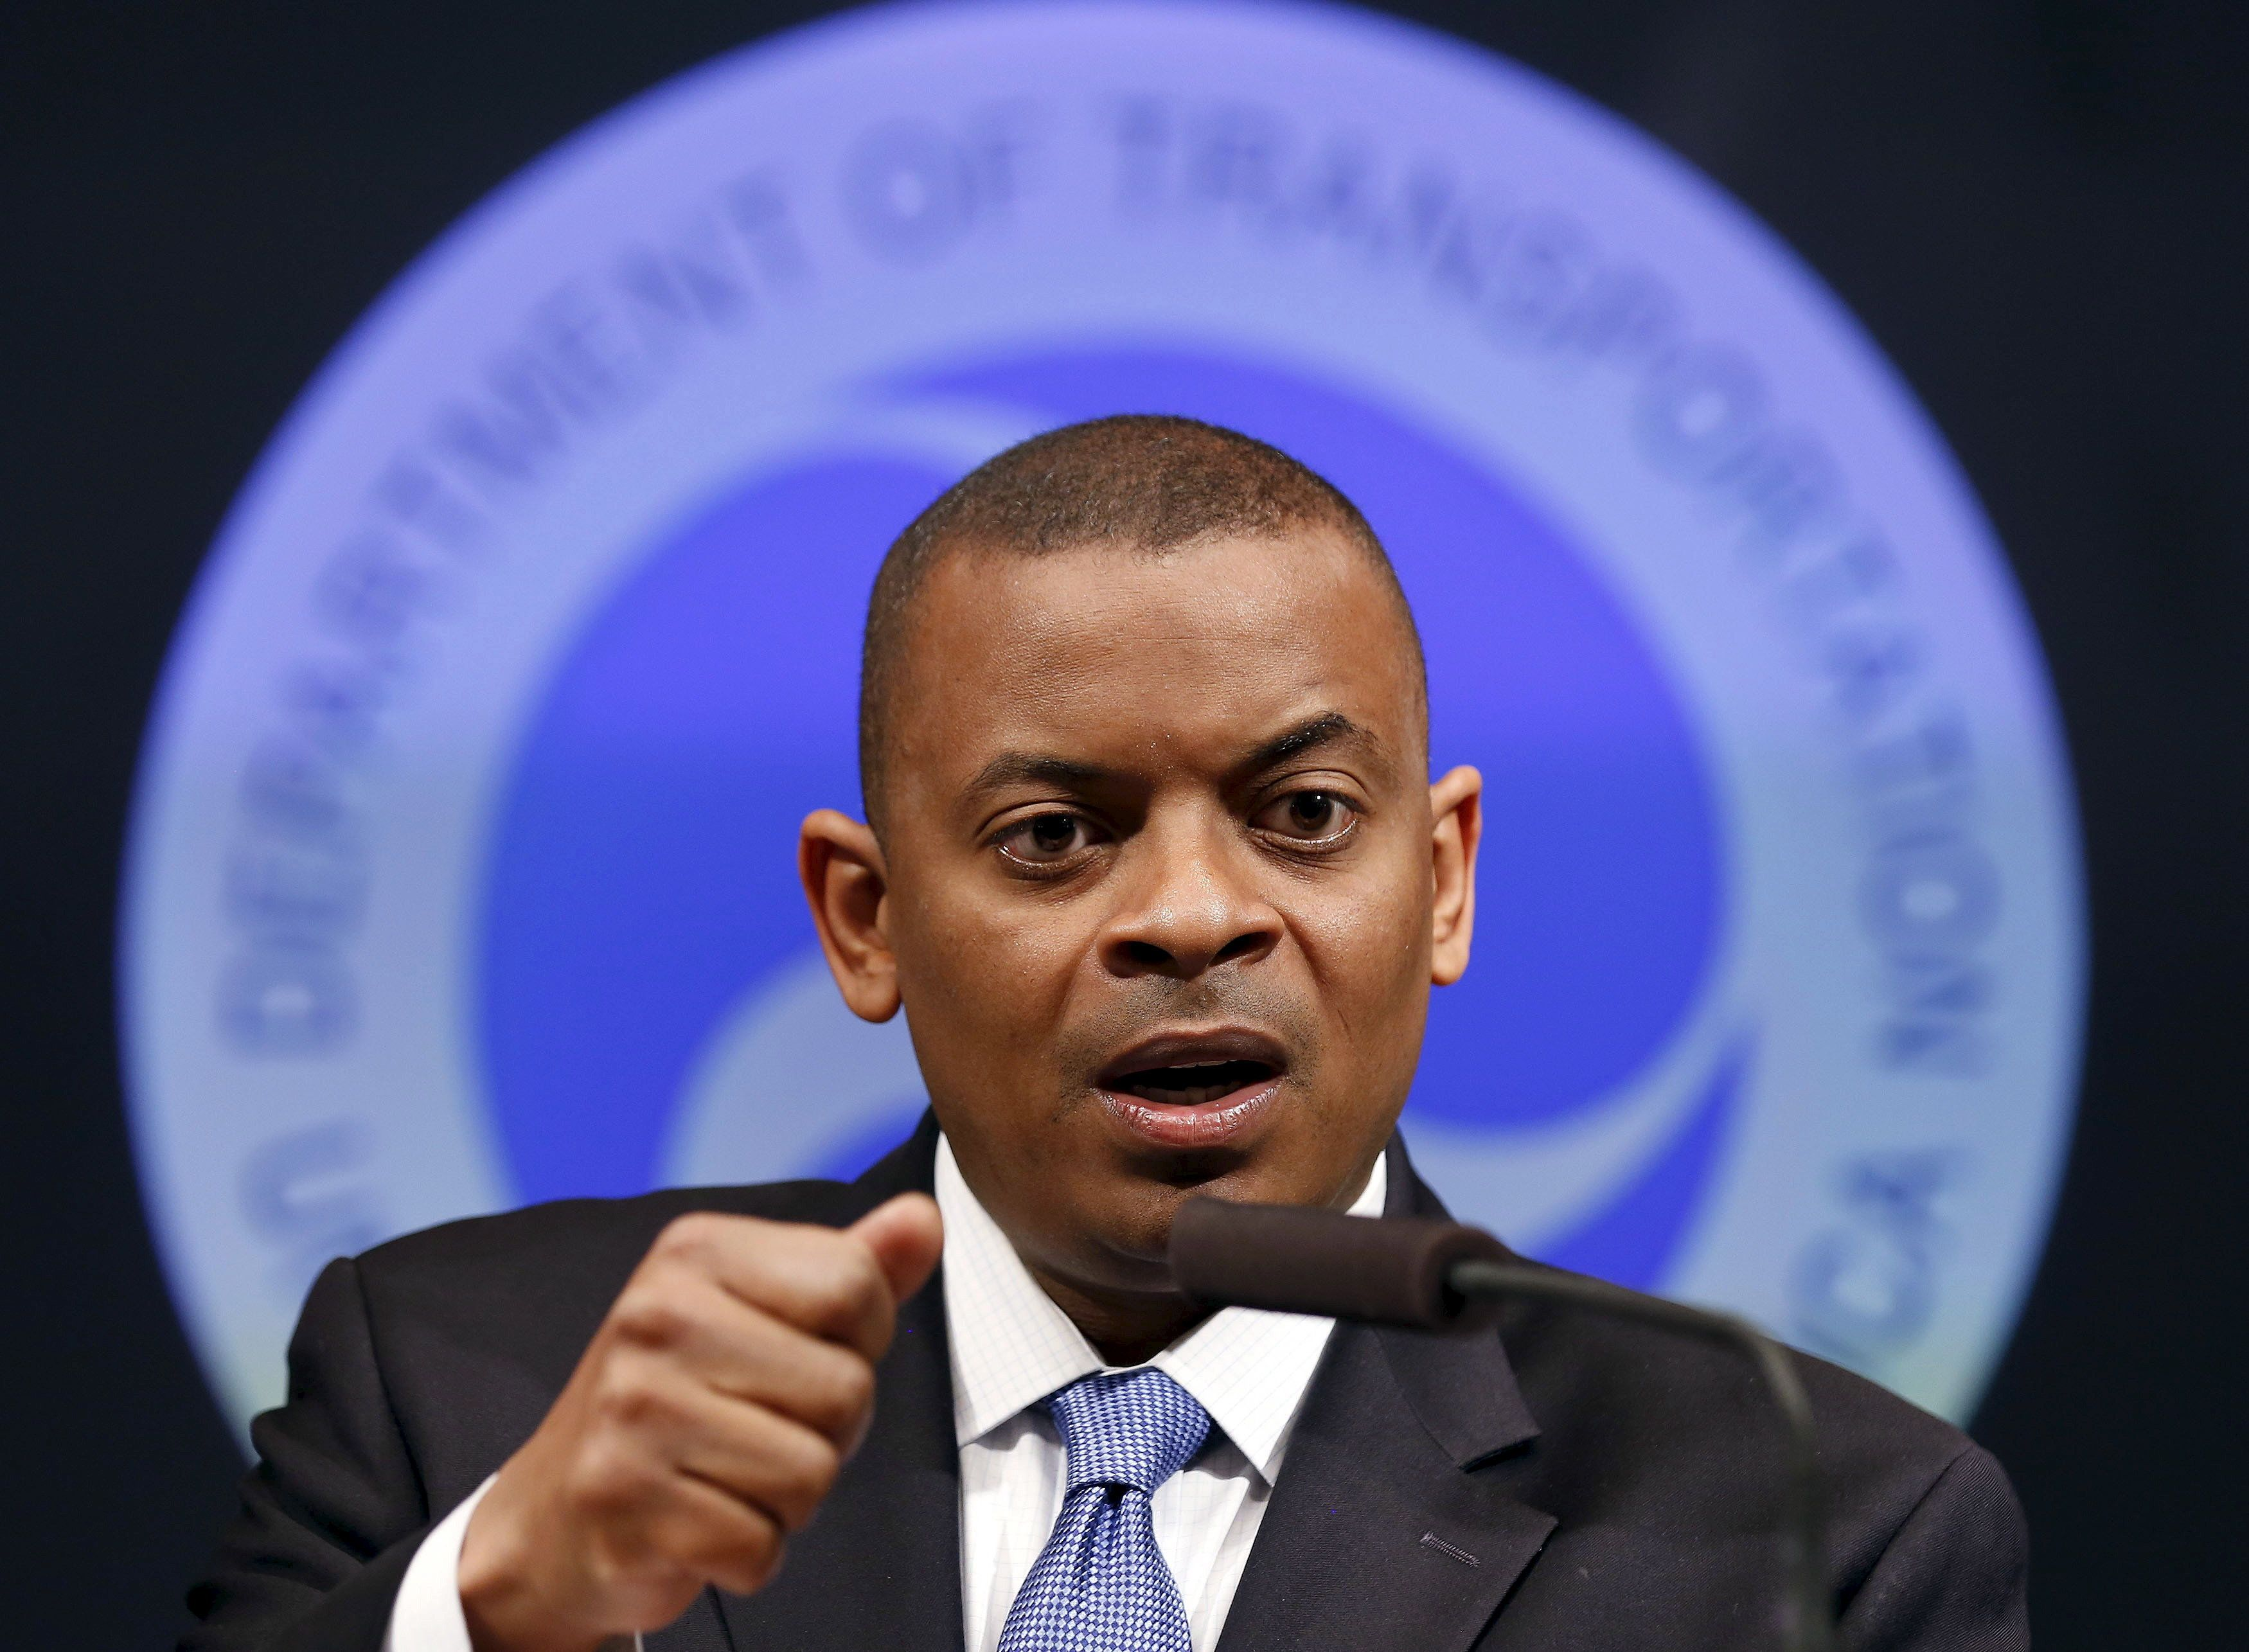 U.S. Transportation Secretary Anthony Foxx said in an interview that he expects the state of Alabama to abide by the Dec